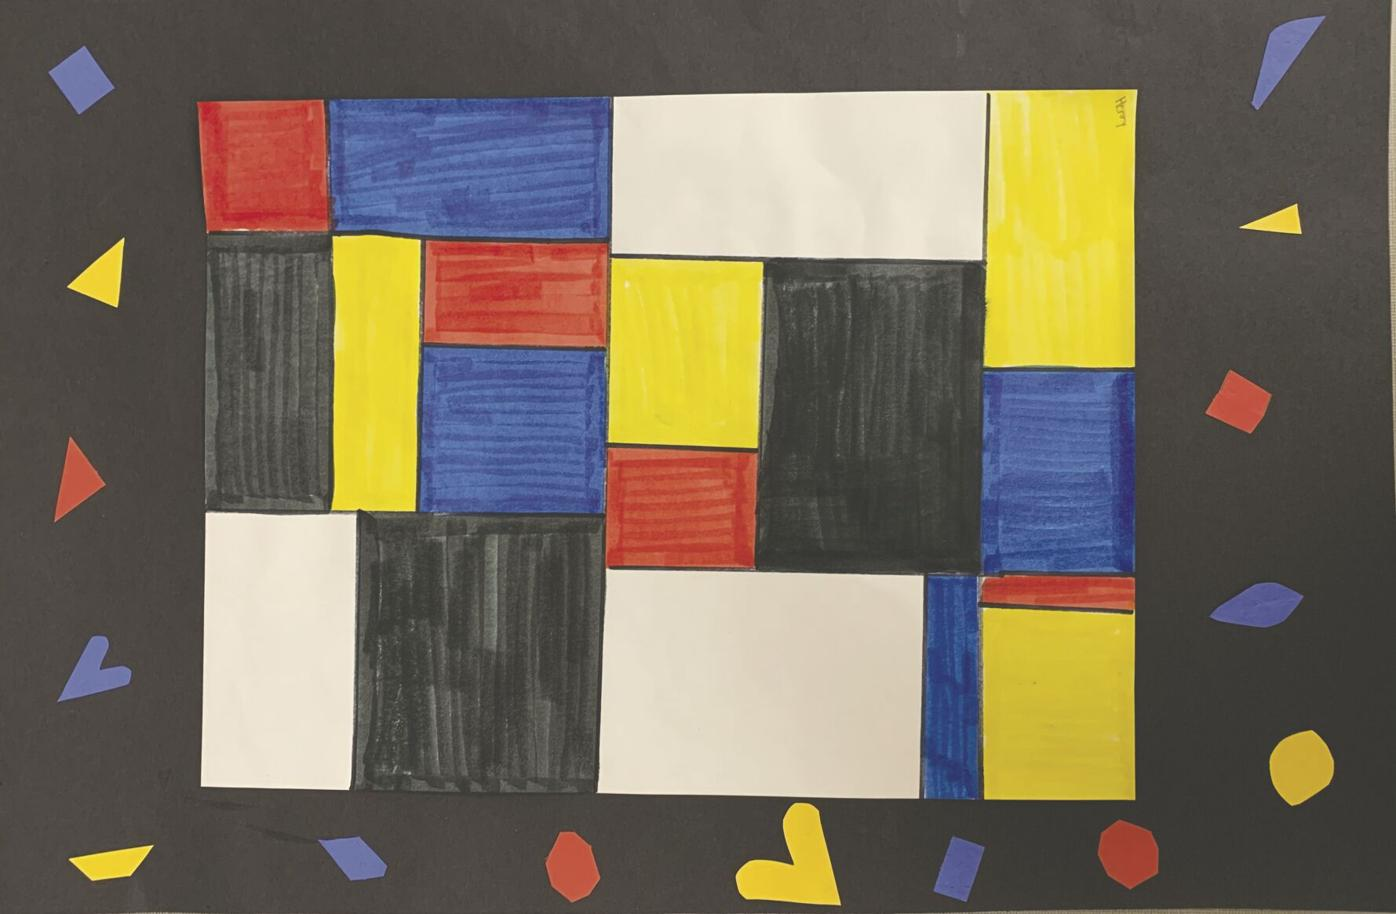 Piet Mondrian inspired artwork by Henry C. of West Rapids Elementary.